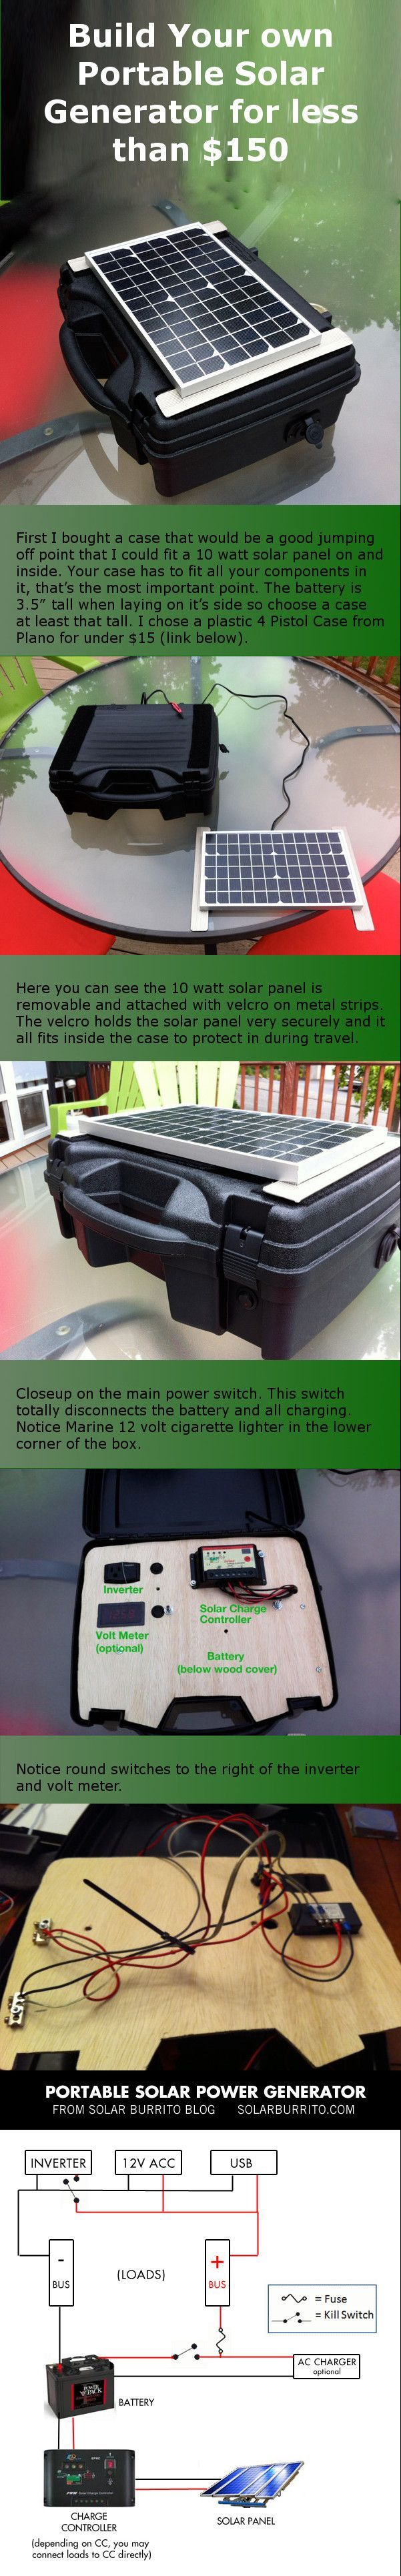 Want to build your own portable solar power generator?